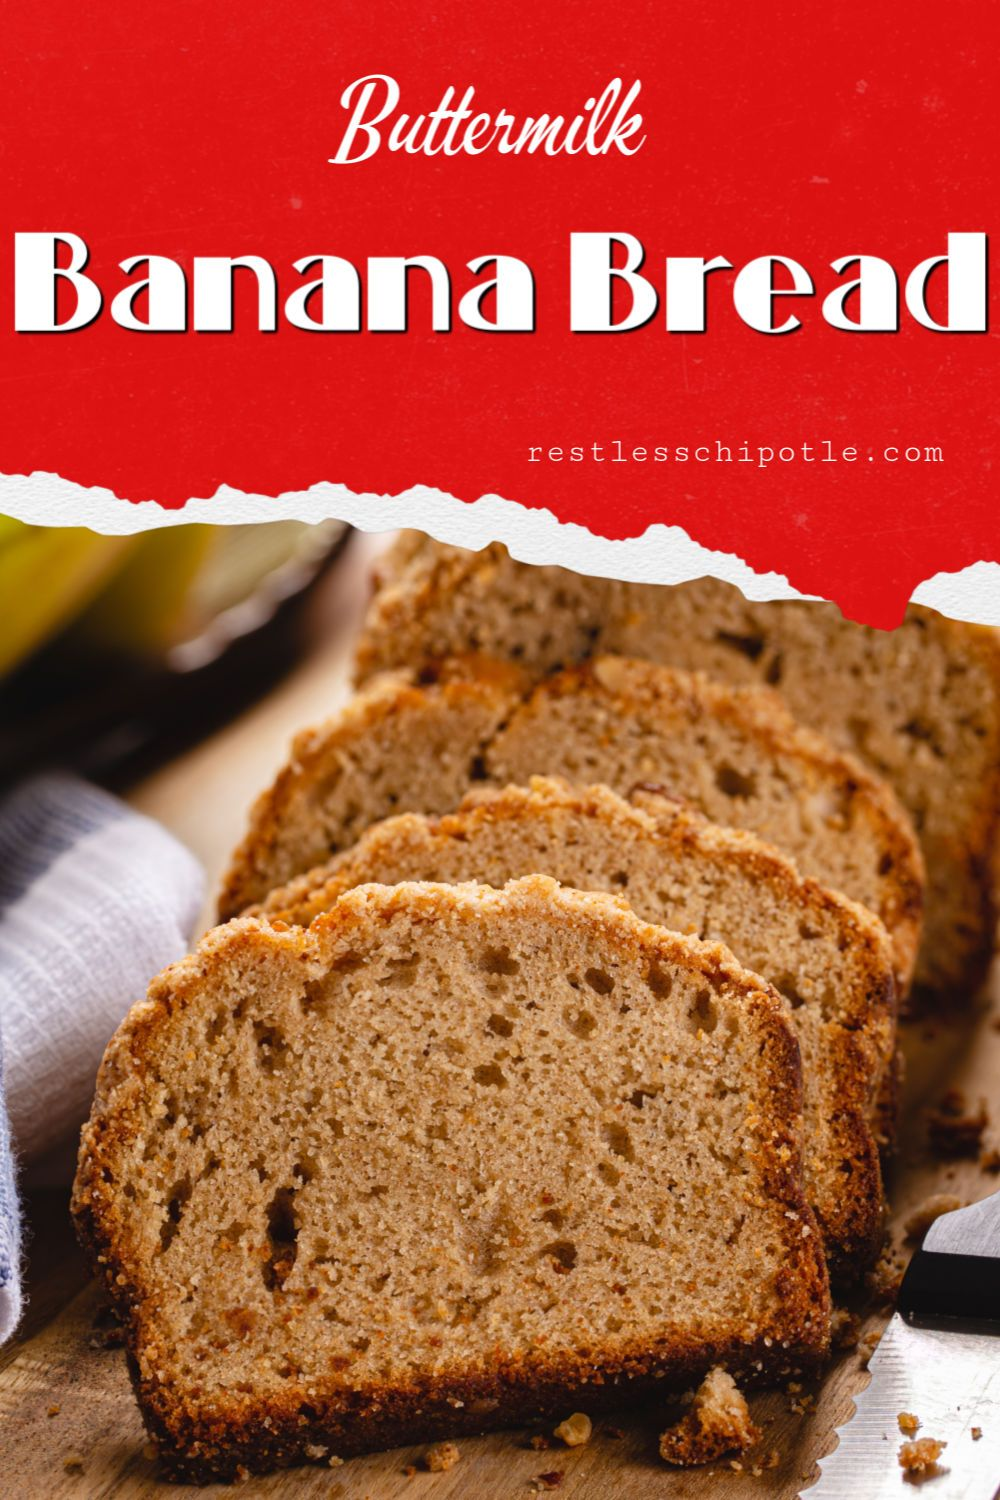 Grandma S Buttermilk Banana Bread Recipe In 2020 Buttermilk Banana Bread Best Homemade Bread Recipe Banana Bread